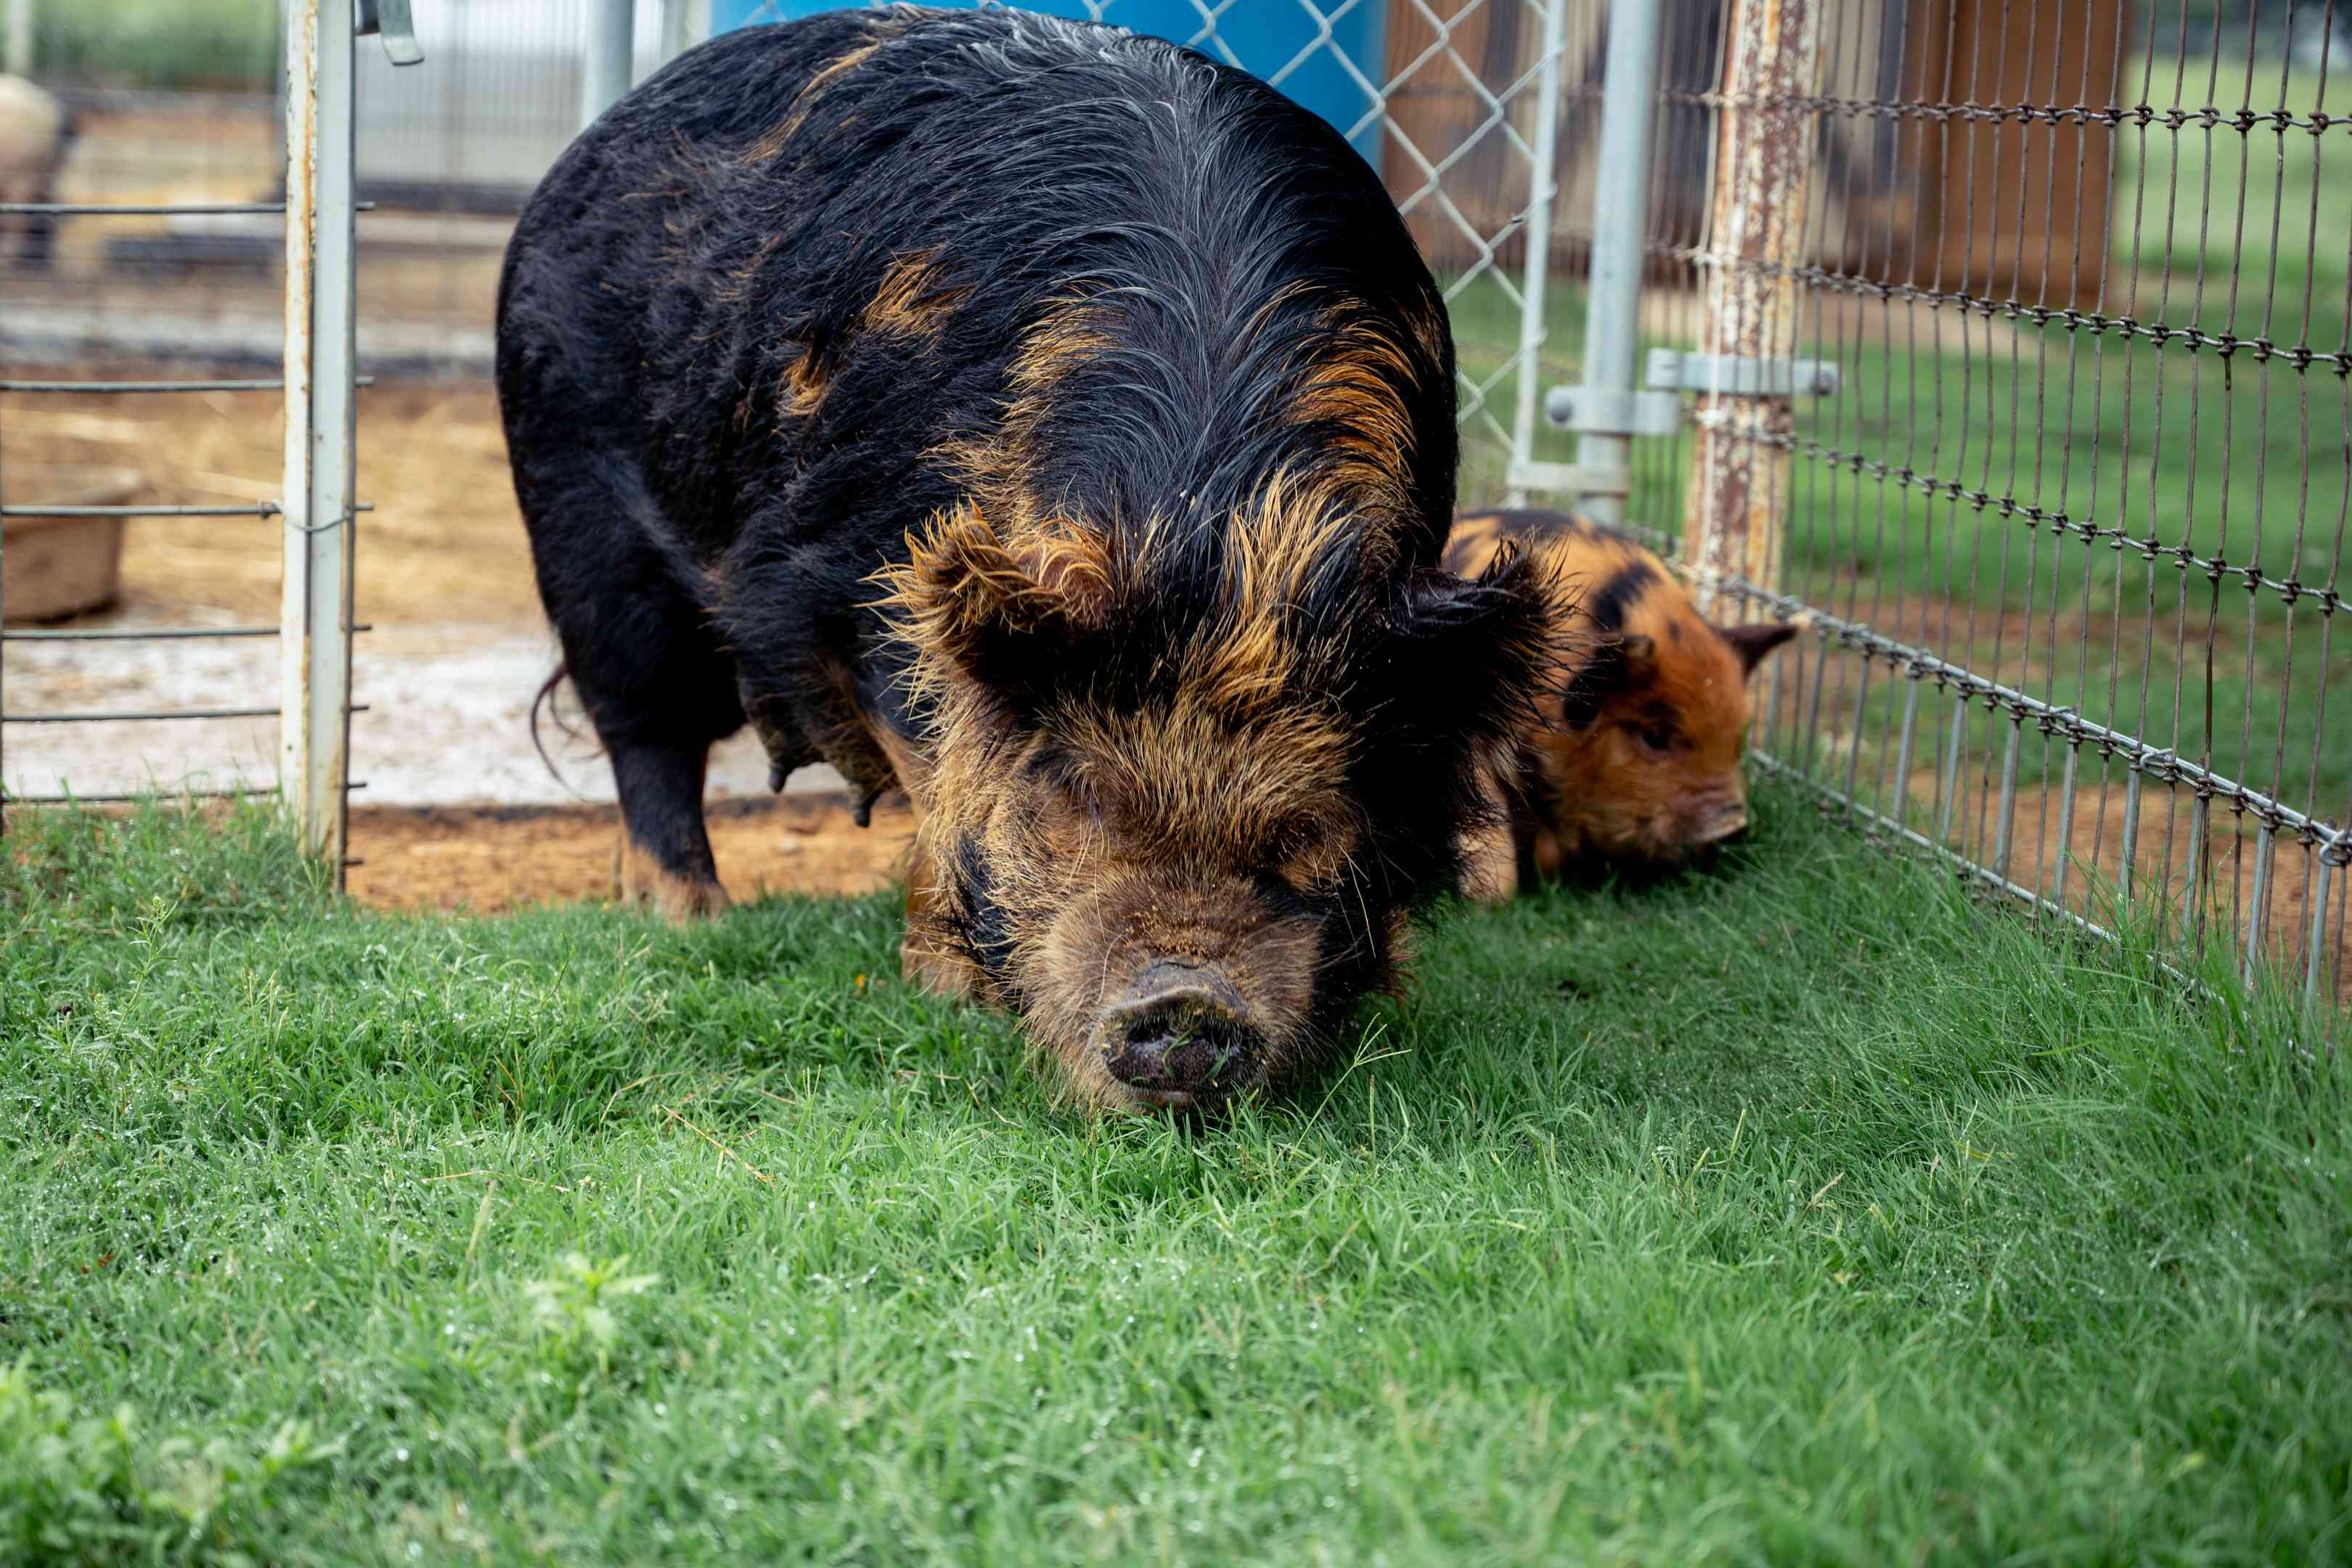 long-haired brindle pig with baby sniff the grass in small wire pen